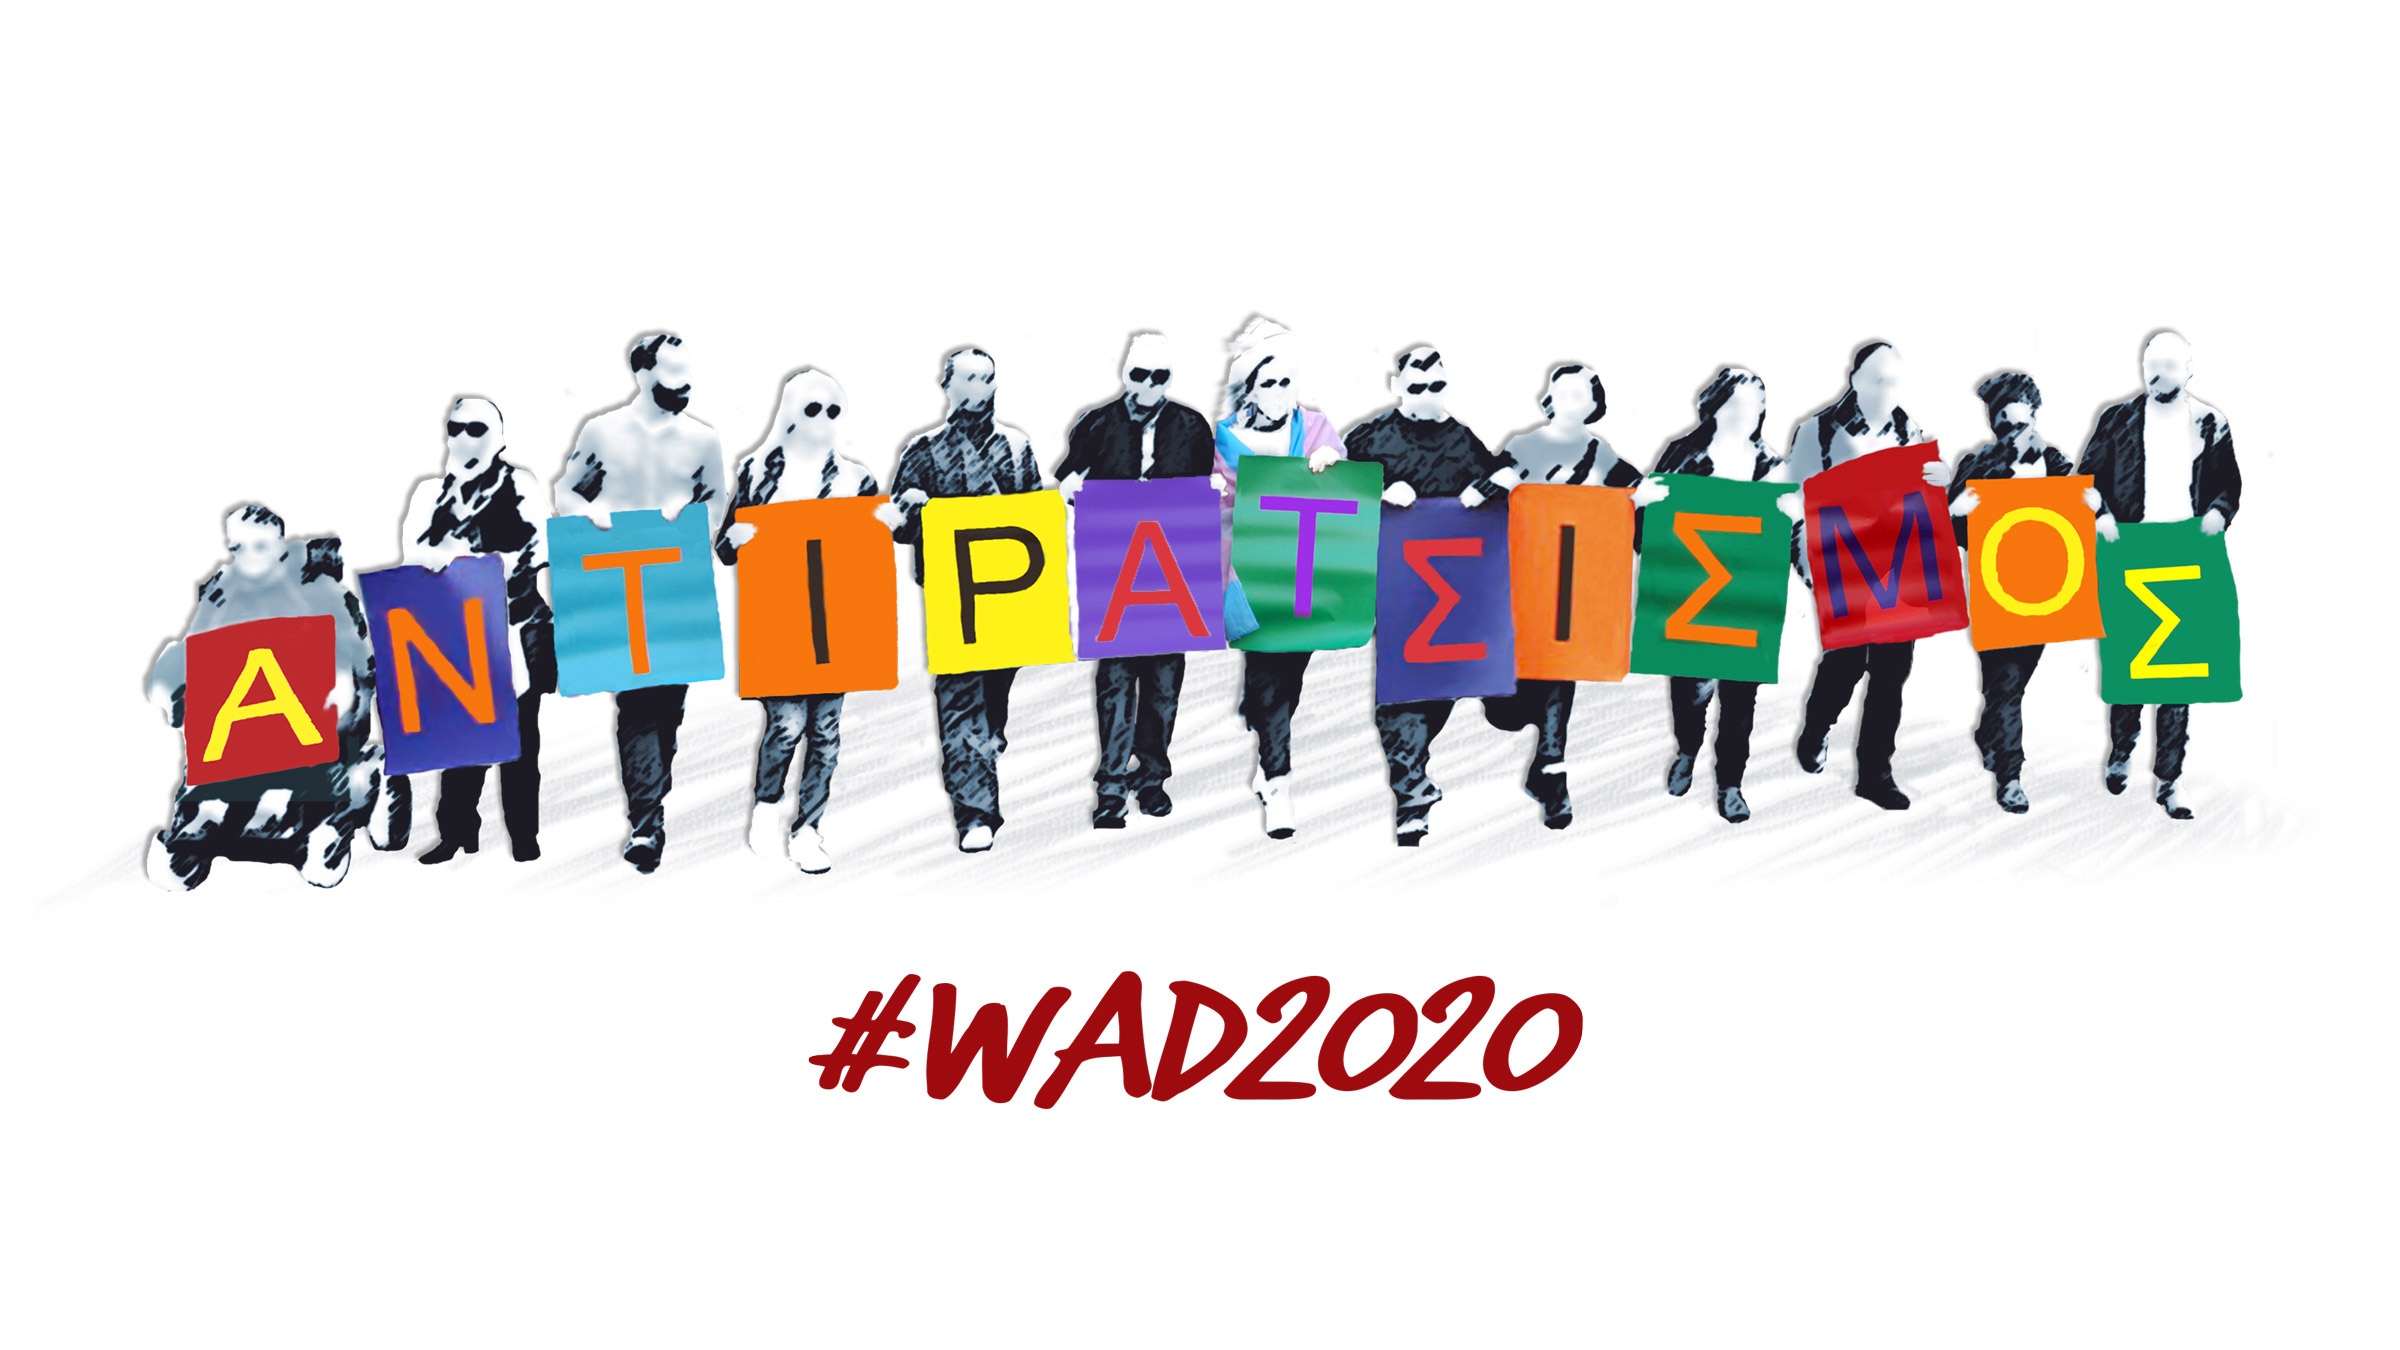 Send a message against Discrimination - WAD2020